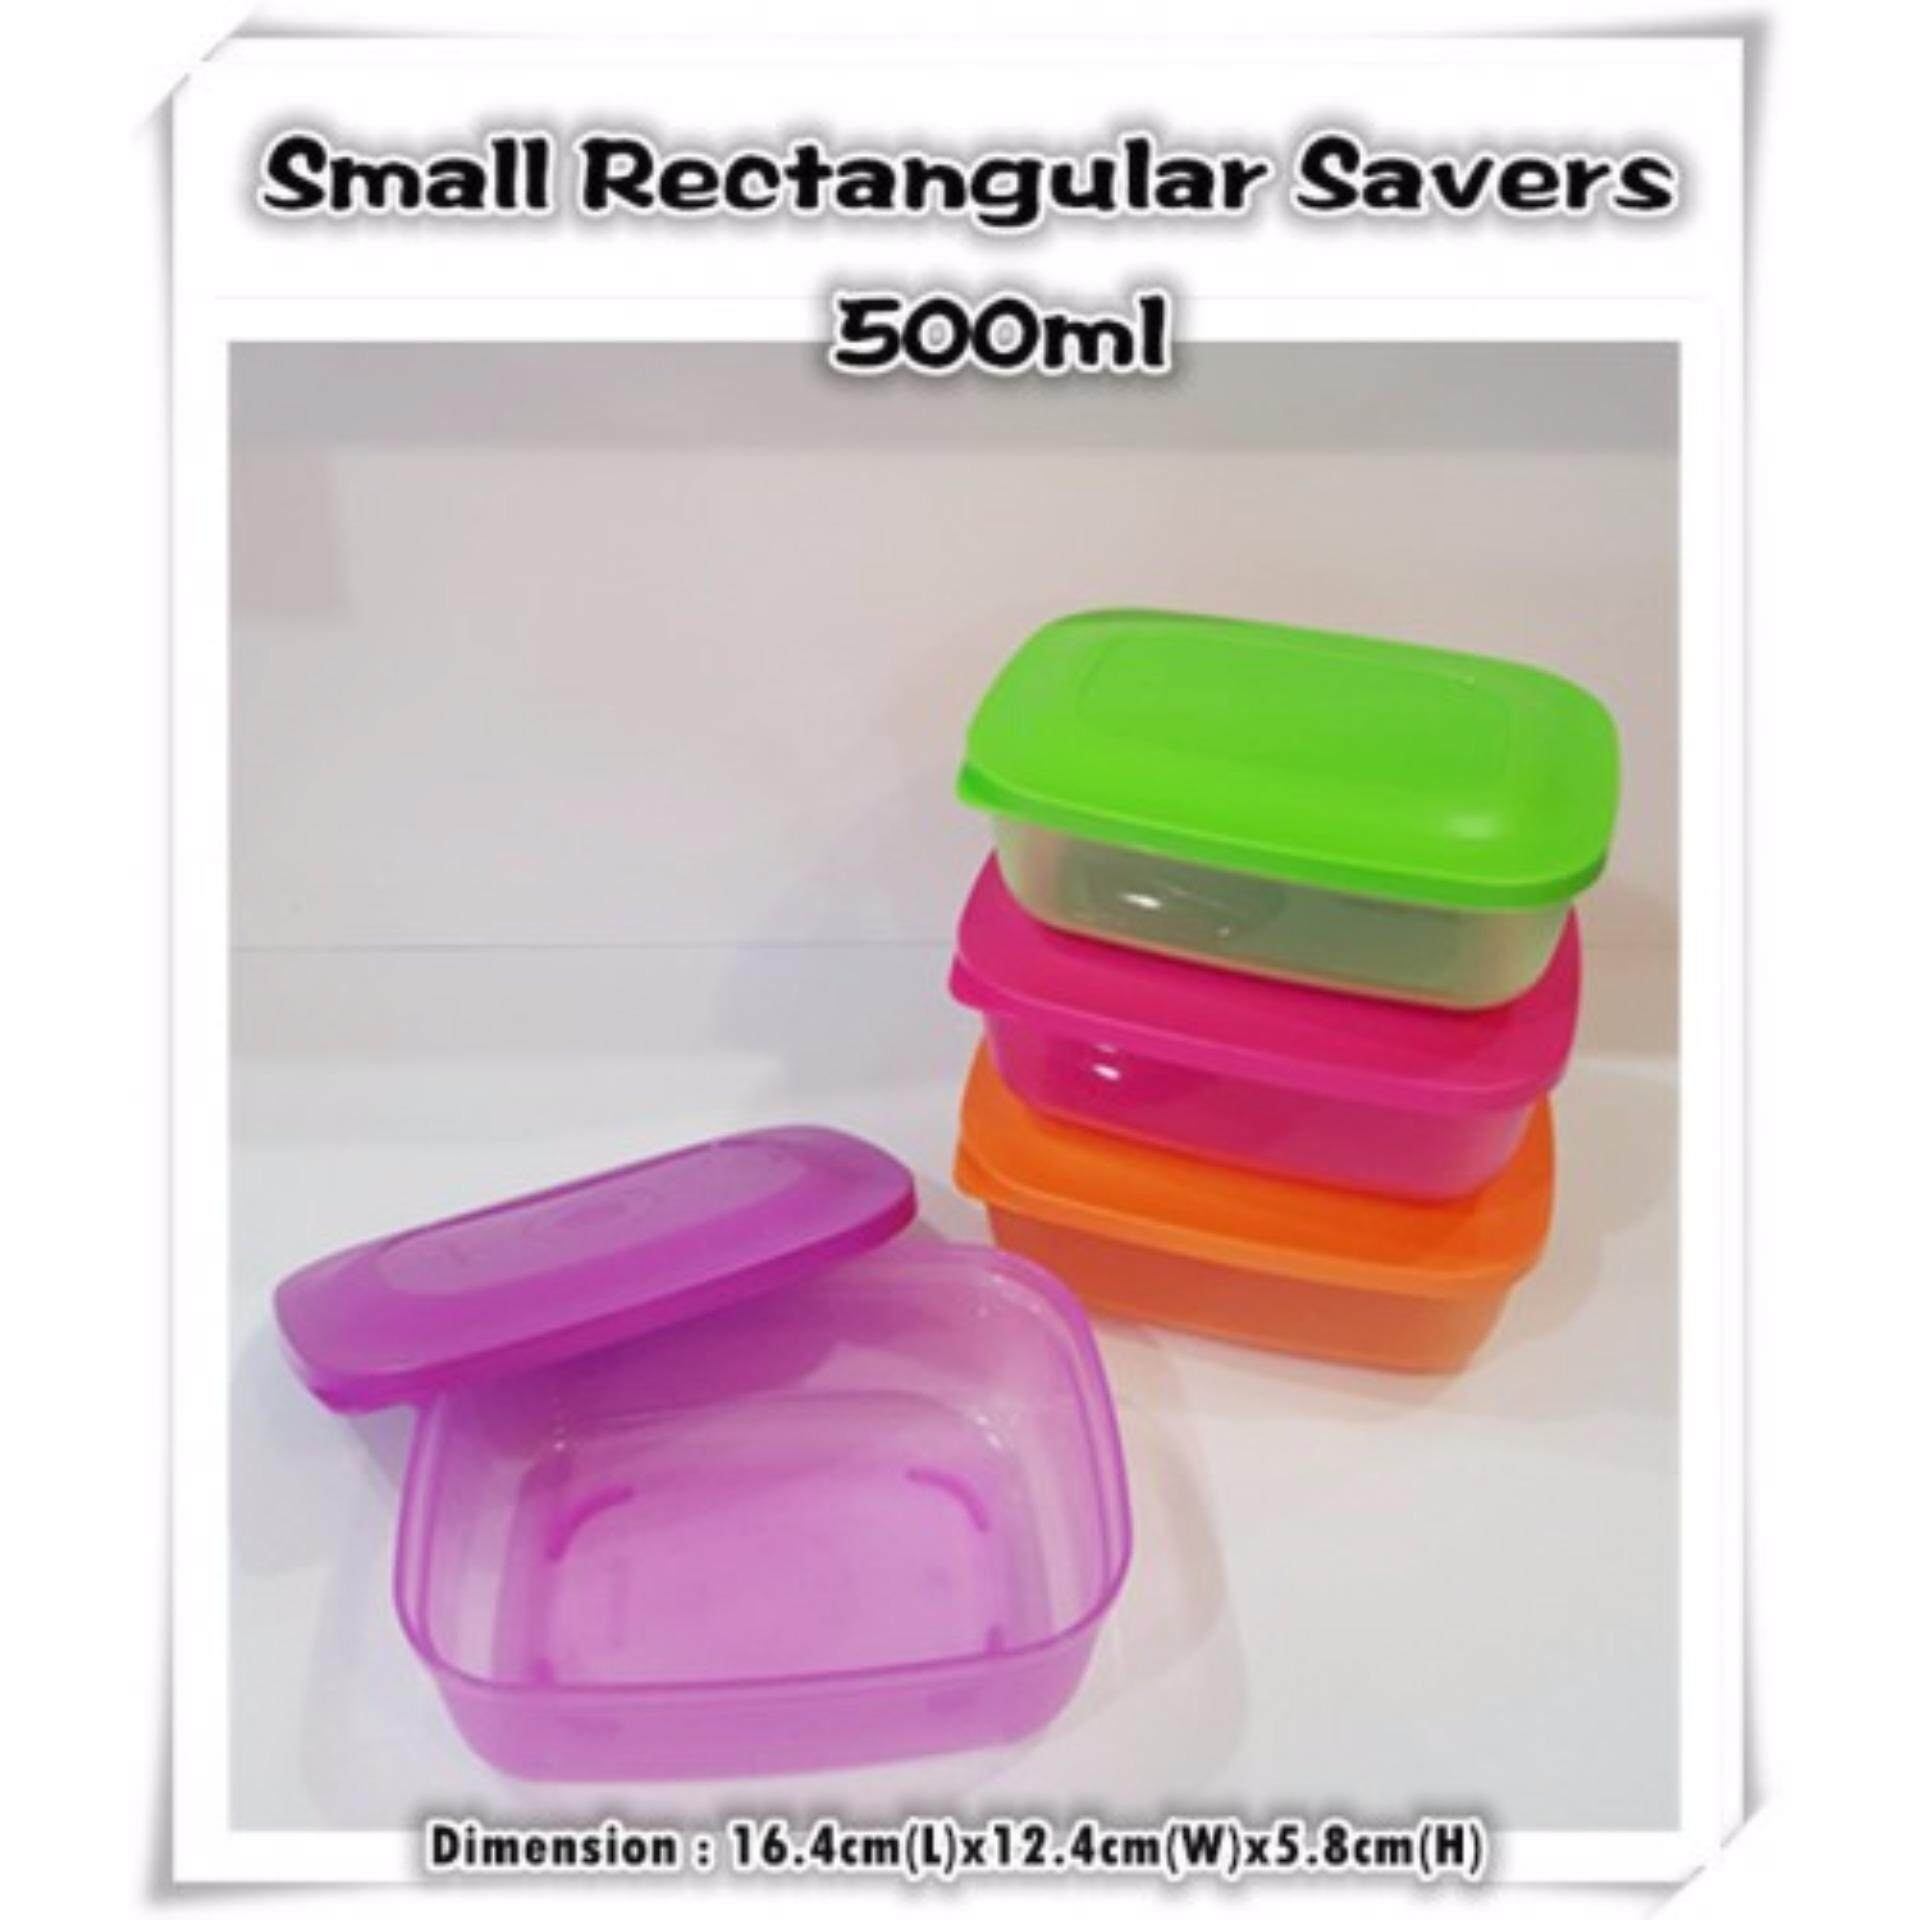 Tupperware Small Rectangular Savers 500ml (2)pcs - Random Color Send